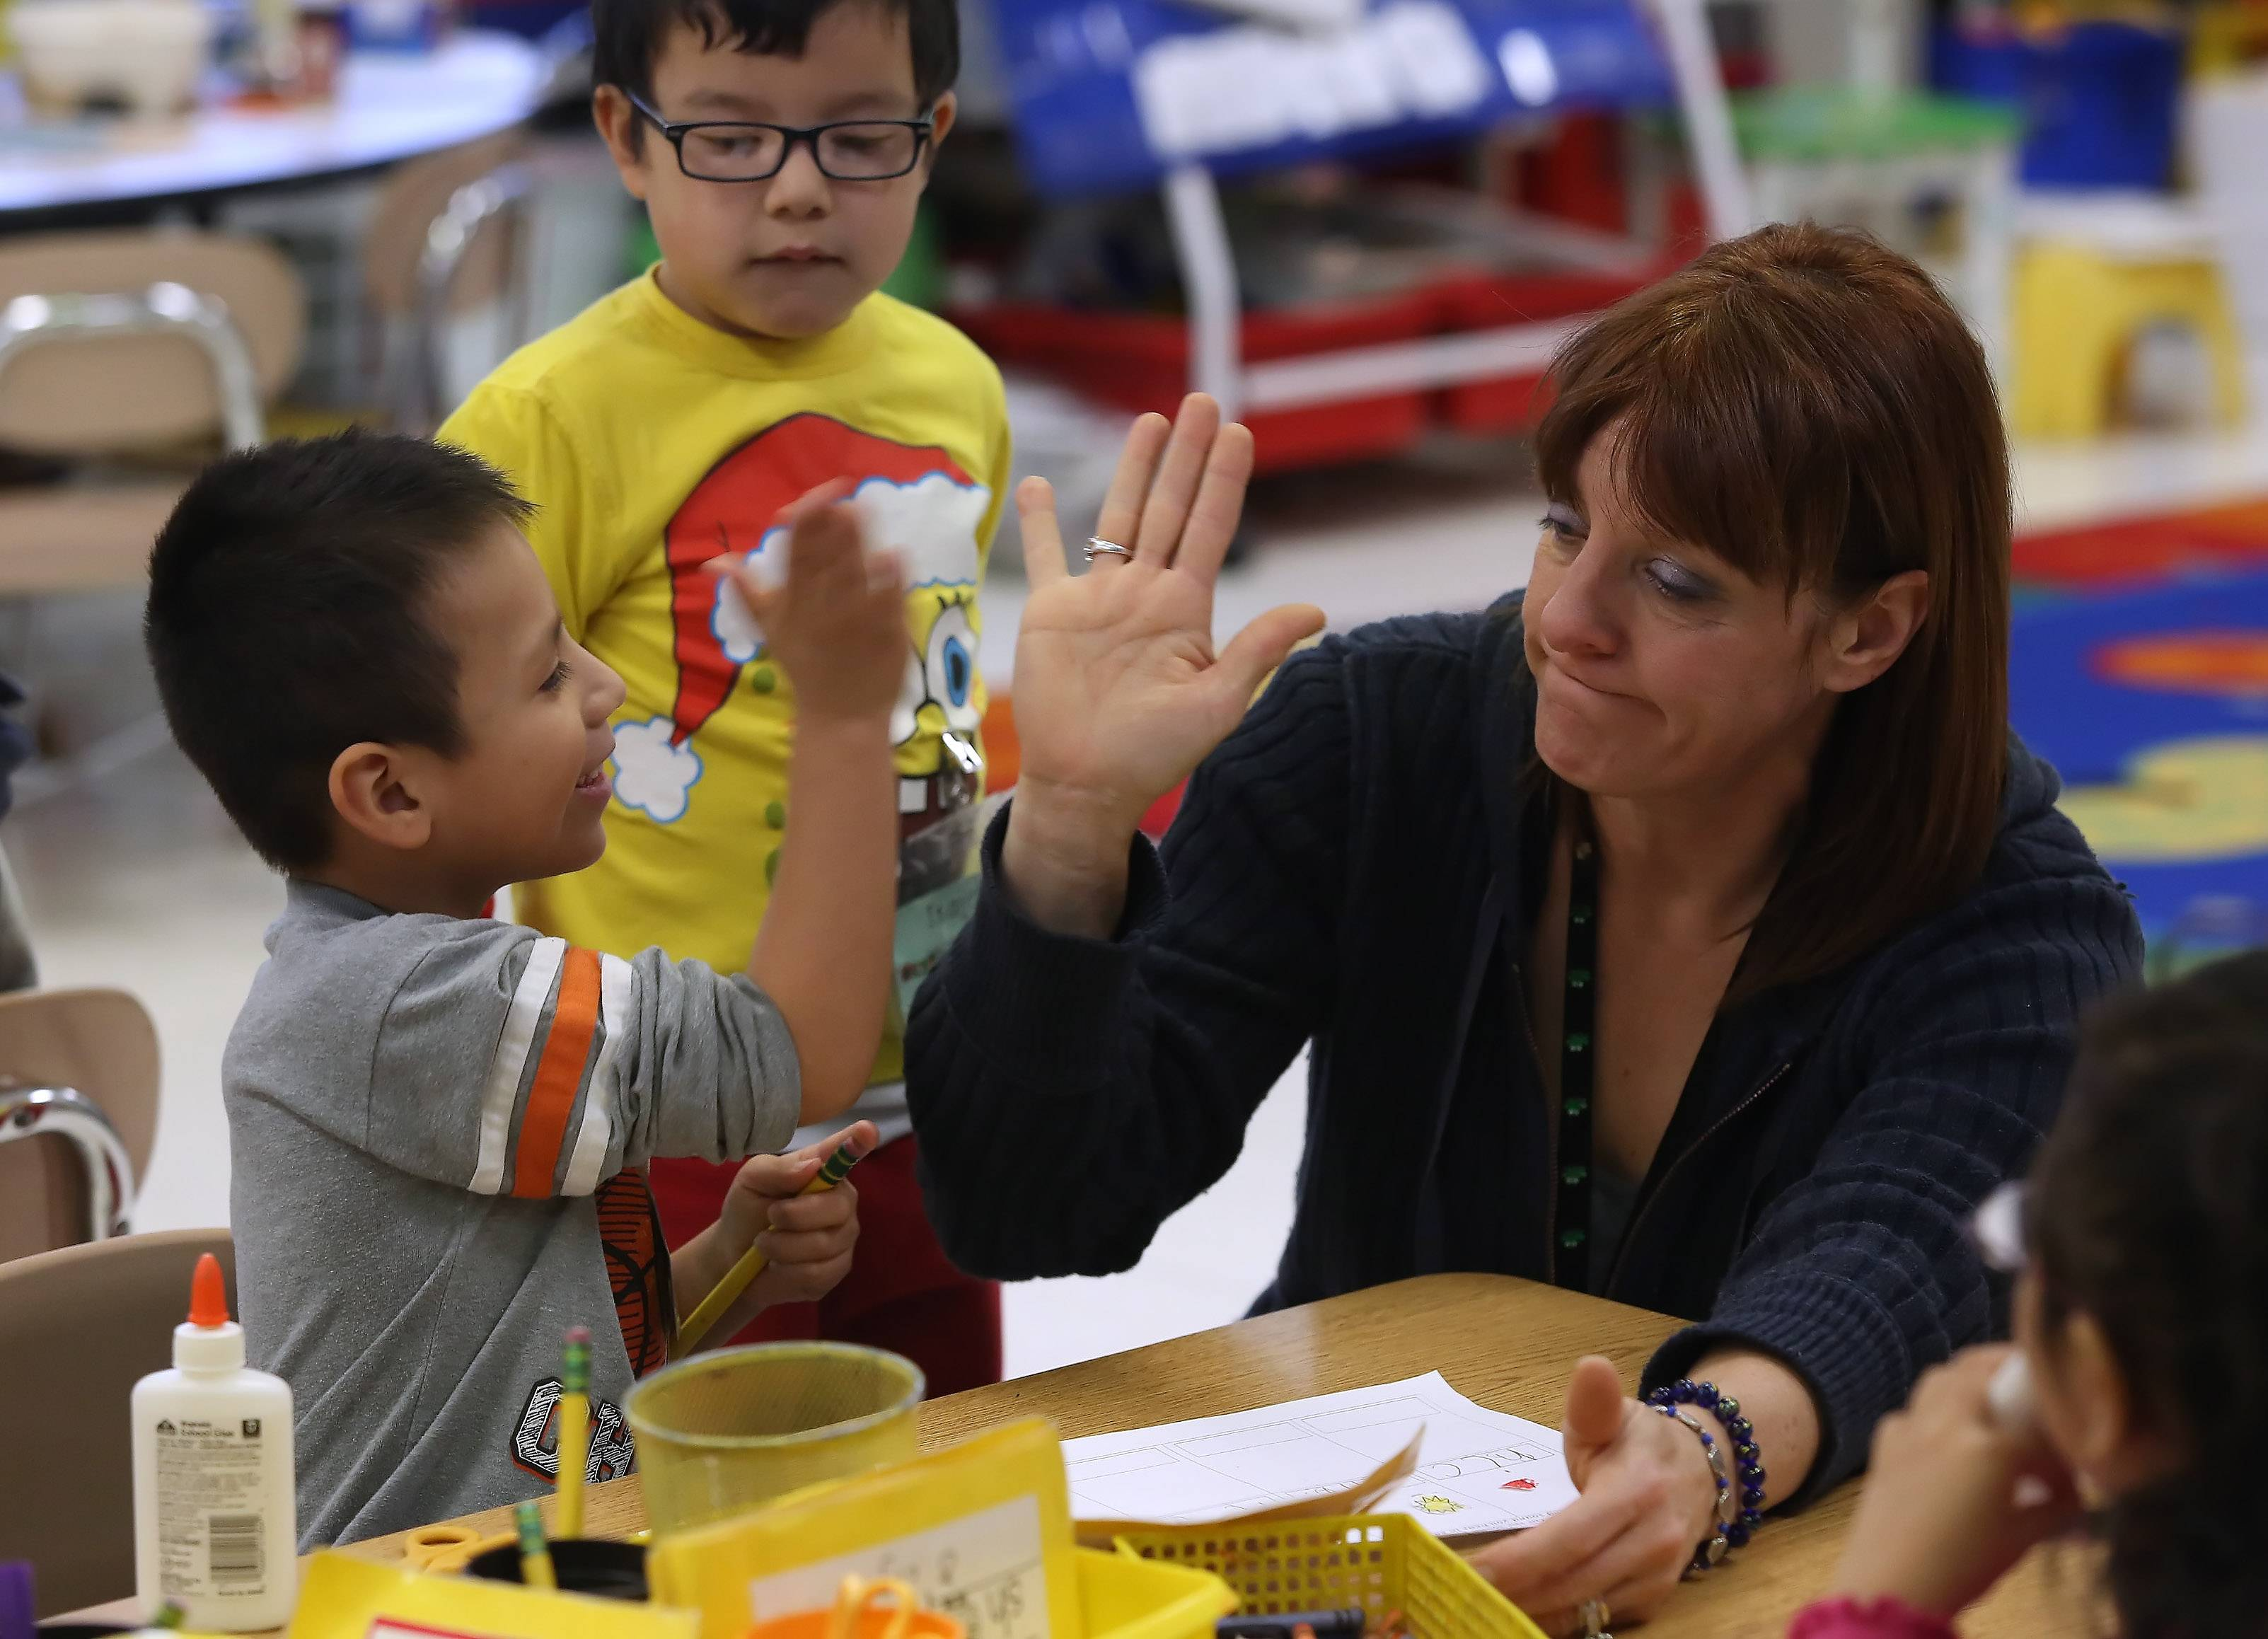 Parents may enroll their children in full-day kindergarten starting in the 2015-16 academic year at Woodland Primary School. Gurnee-based Woodland District 50 board members approved the expanded program this week.